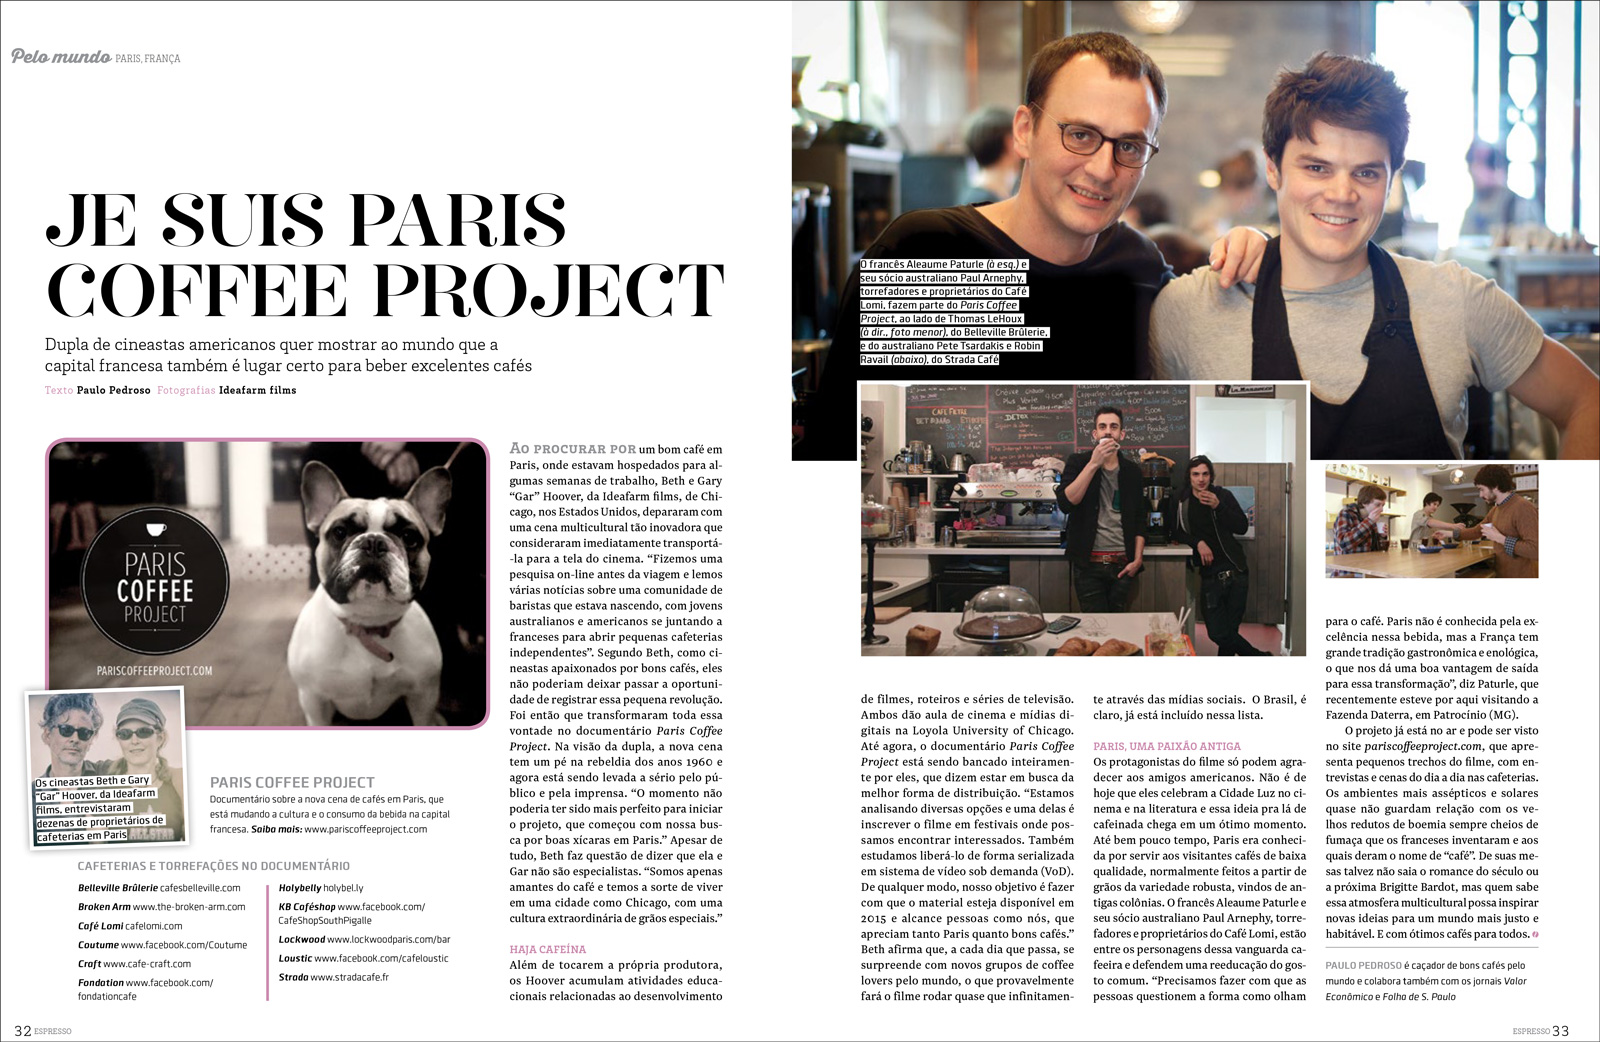 Above, a recent story in Brazil's Espresso Magazine (in Portuguese)by writer Paulo Pedroso talks about the genesis of the Paris Coffee Project.